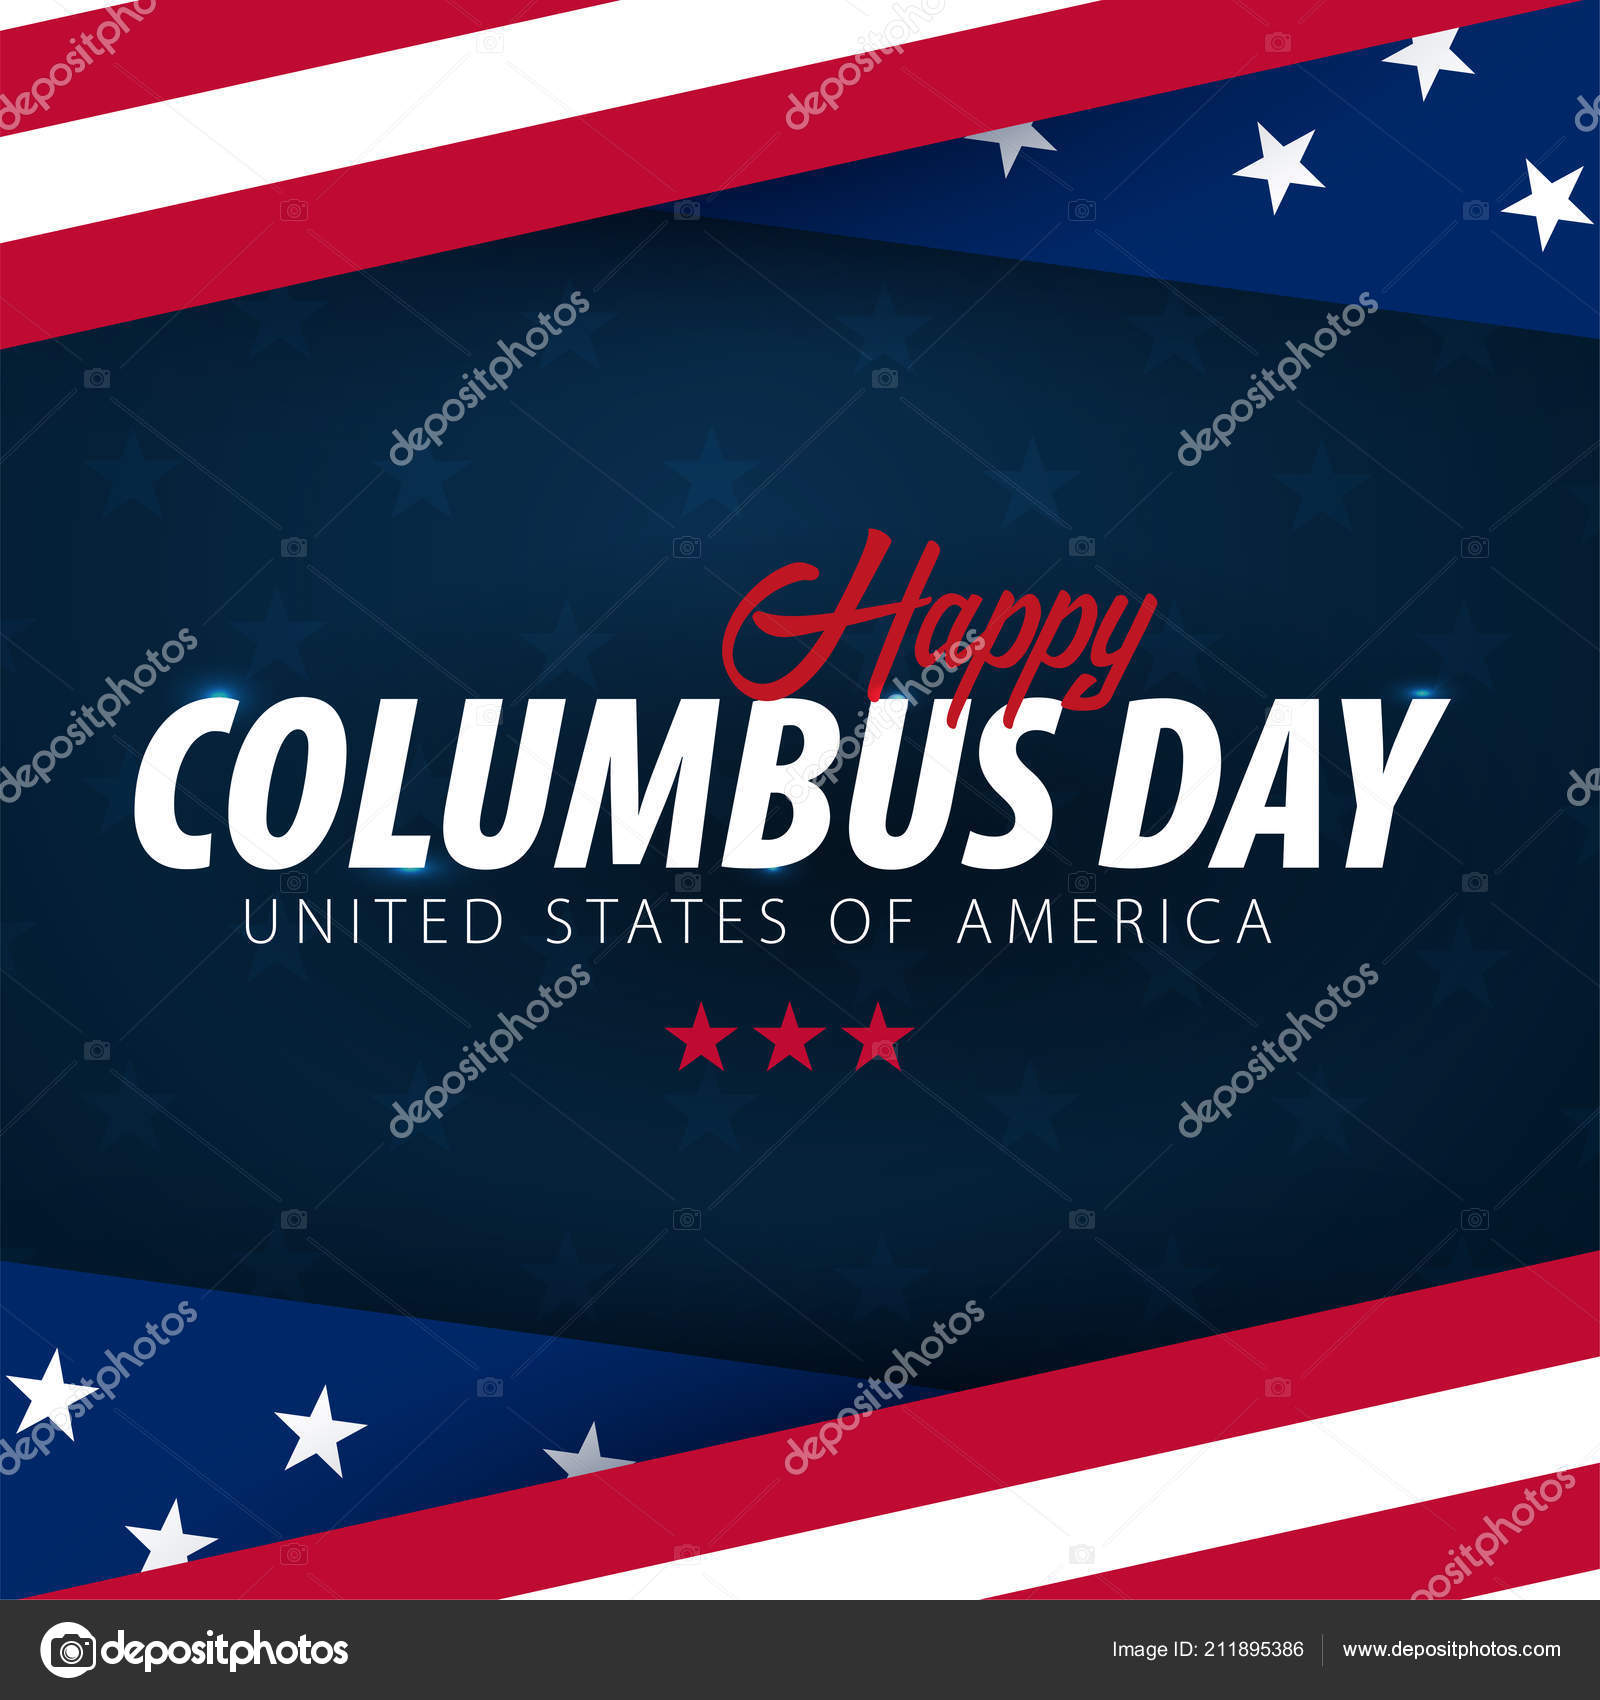 Columbus Day Sale Promotion Advertising Poster Banner Template With American Flag Wallpaper Voucher Discount Vector By Leo Design